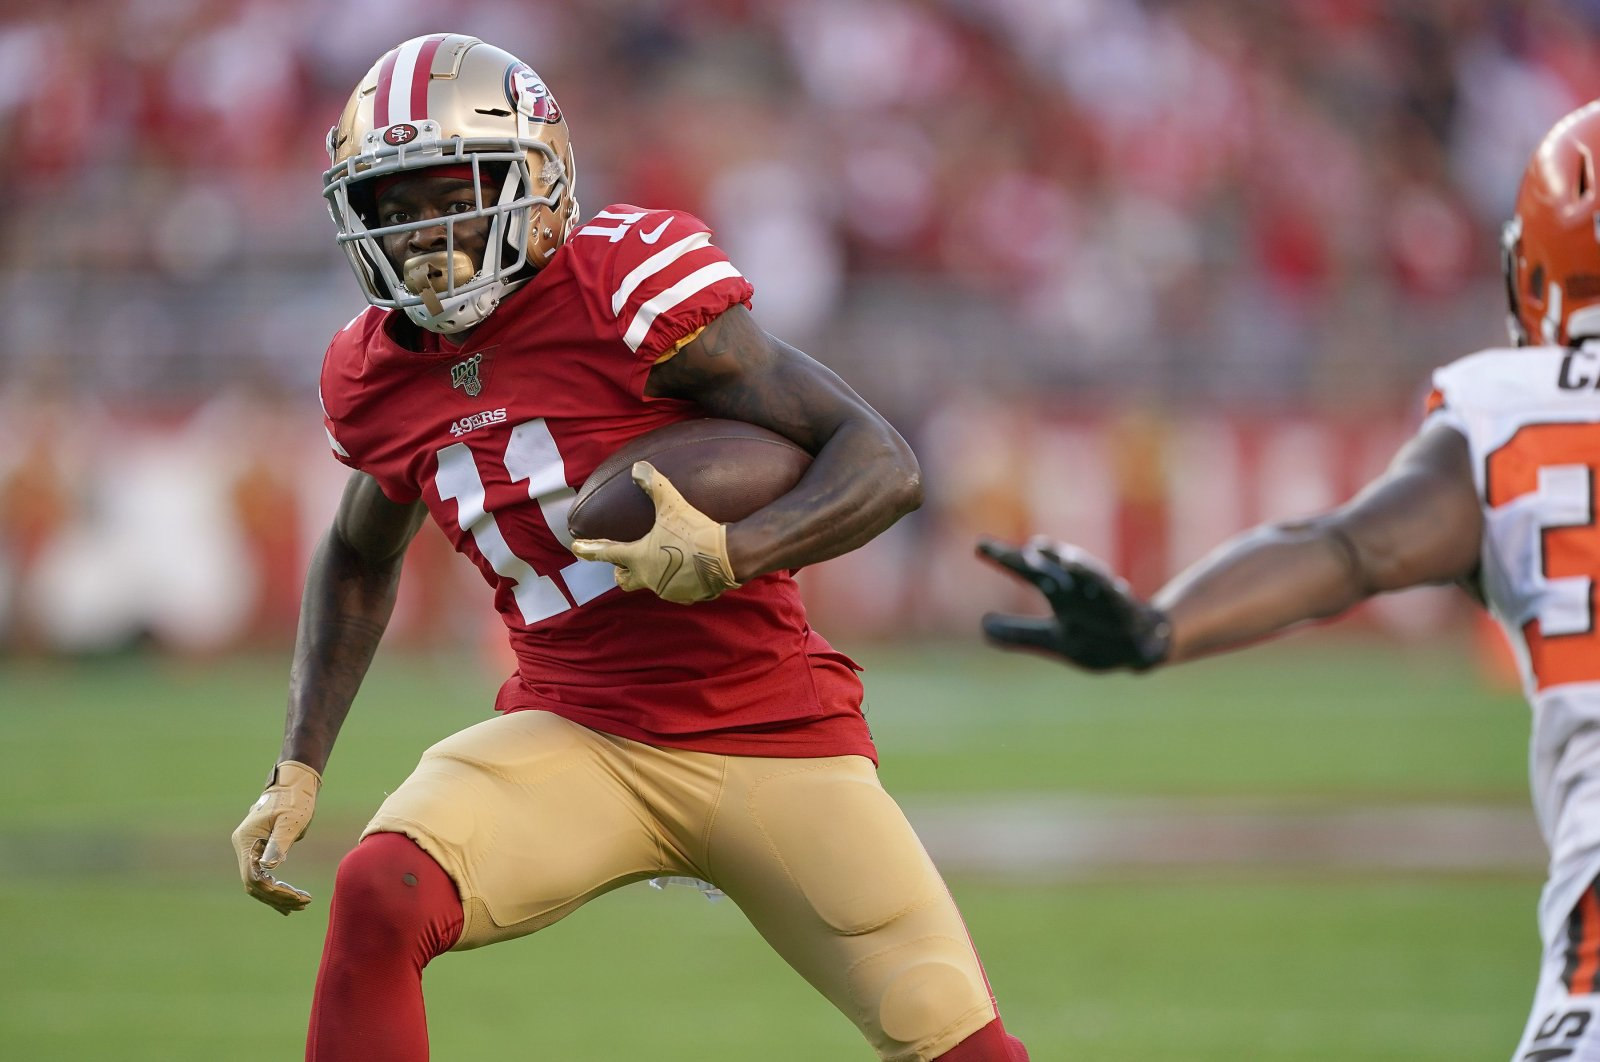 Marquise Goodwin carries the ball against the Cleveland Browns, in Santa Clara, California, United States,  Monday, Oct. 7, 2019 in Santa Clara, California. (AFP Photo)